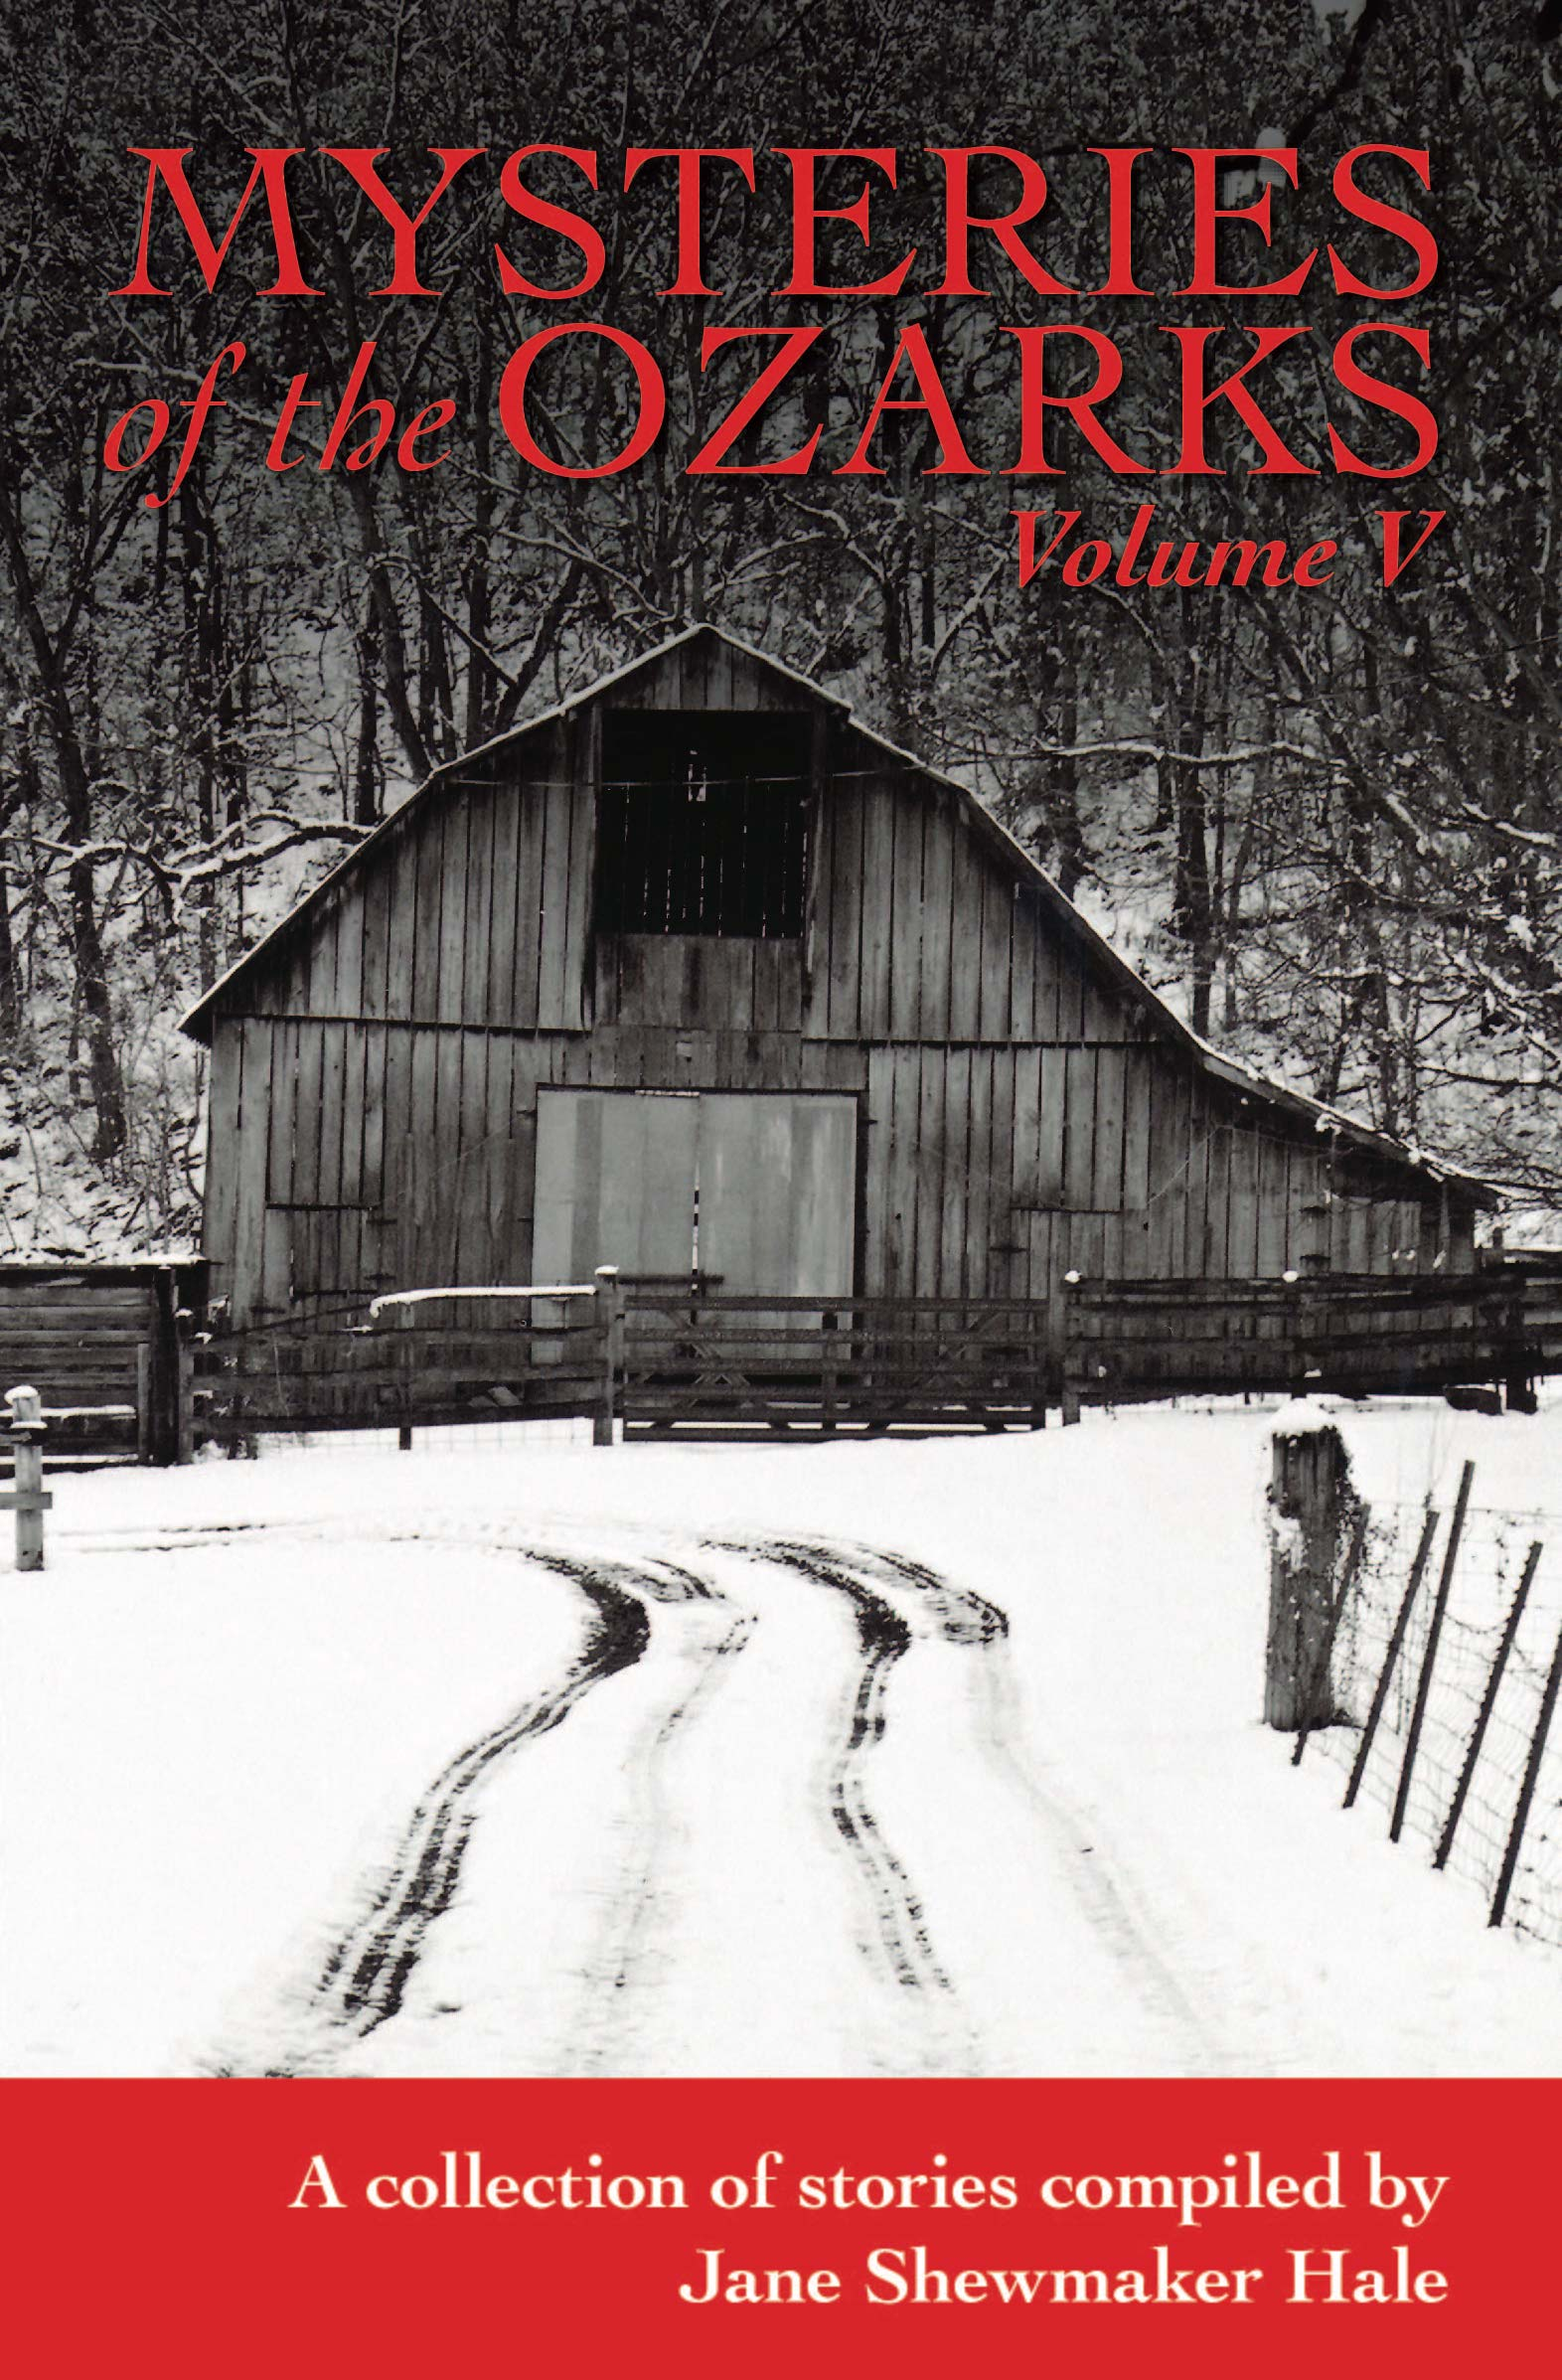 Mysteries of the Ozarks, Vol. V